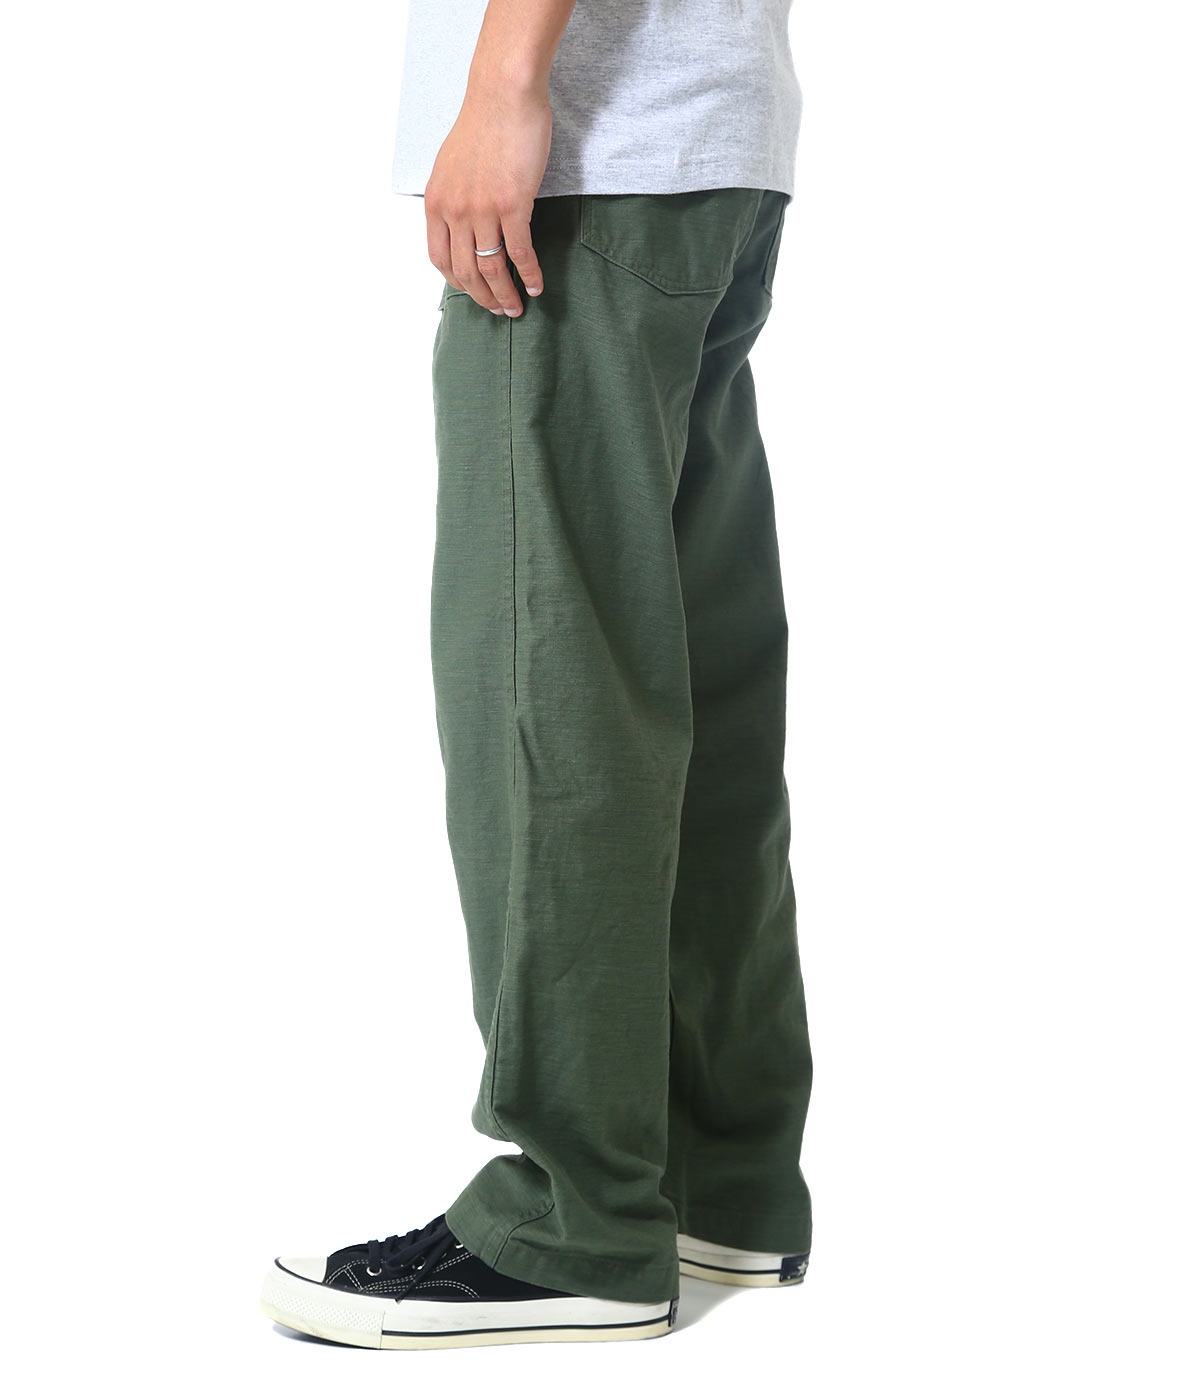 US ARMY FATIGUE PANTS